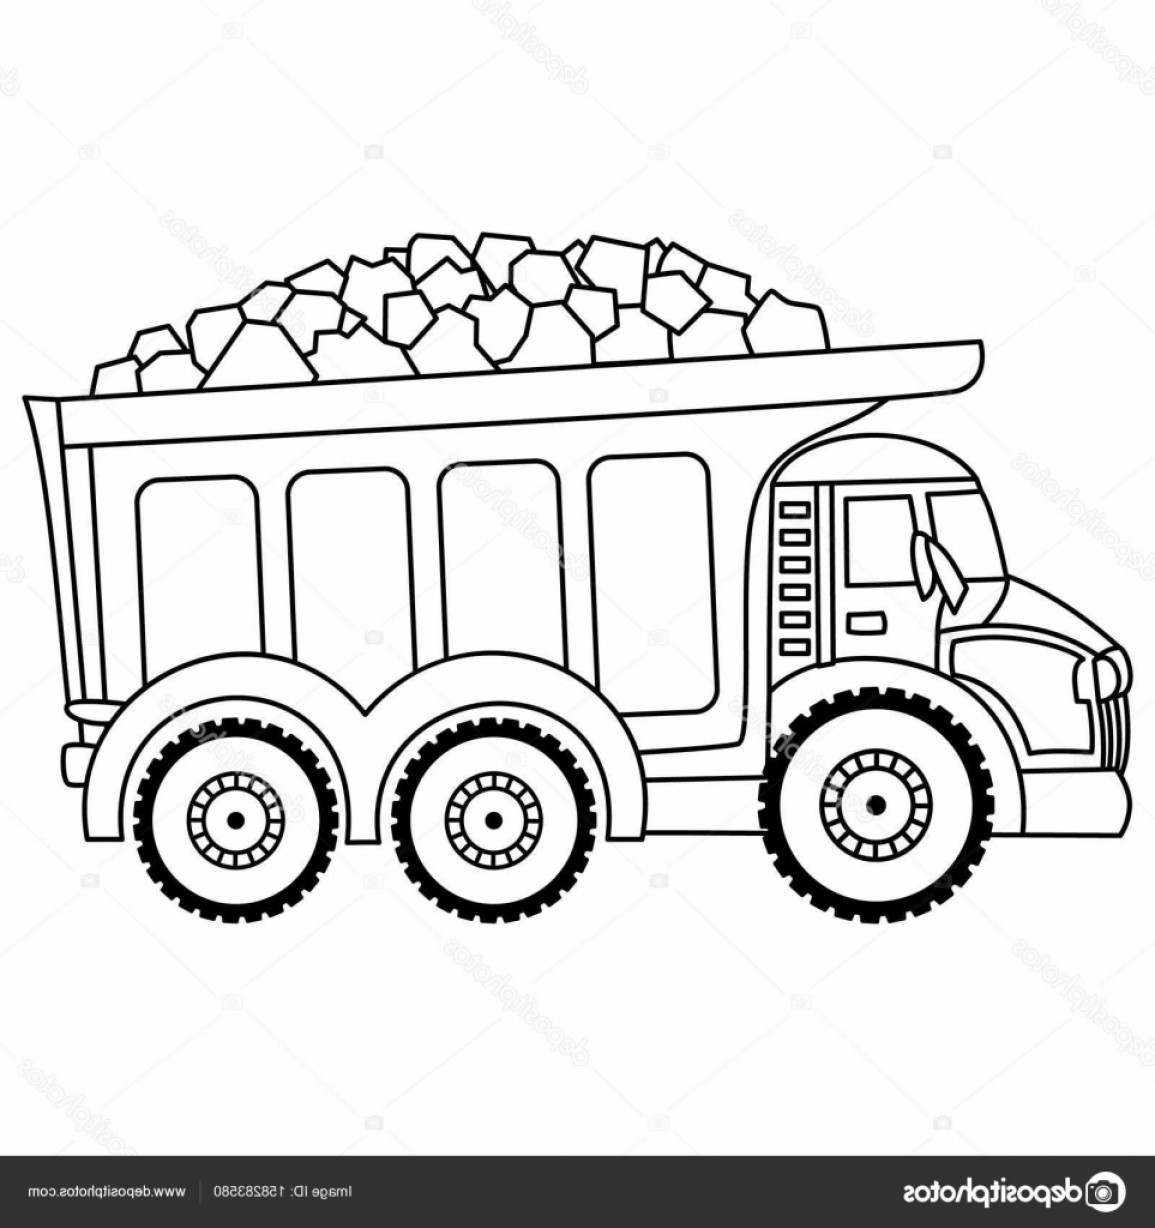 Dump Truck Vector Black And White: Stock Illustration Vector Dump Truck Black And